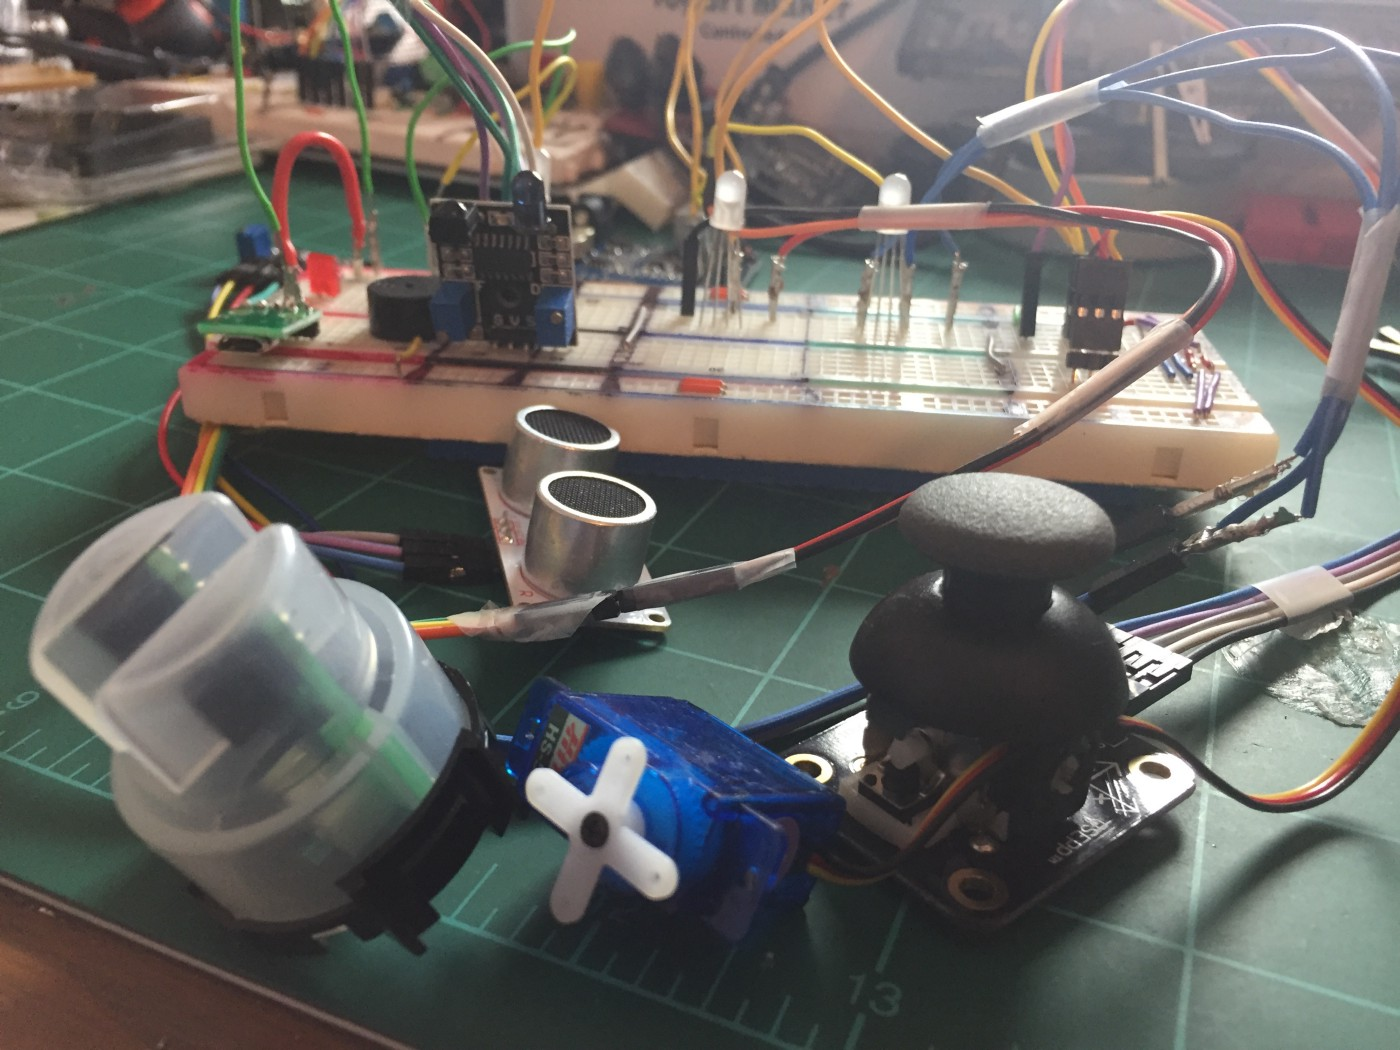 Hacking away at a Smart Water Quality meter